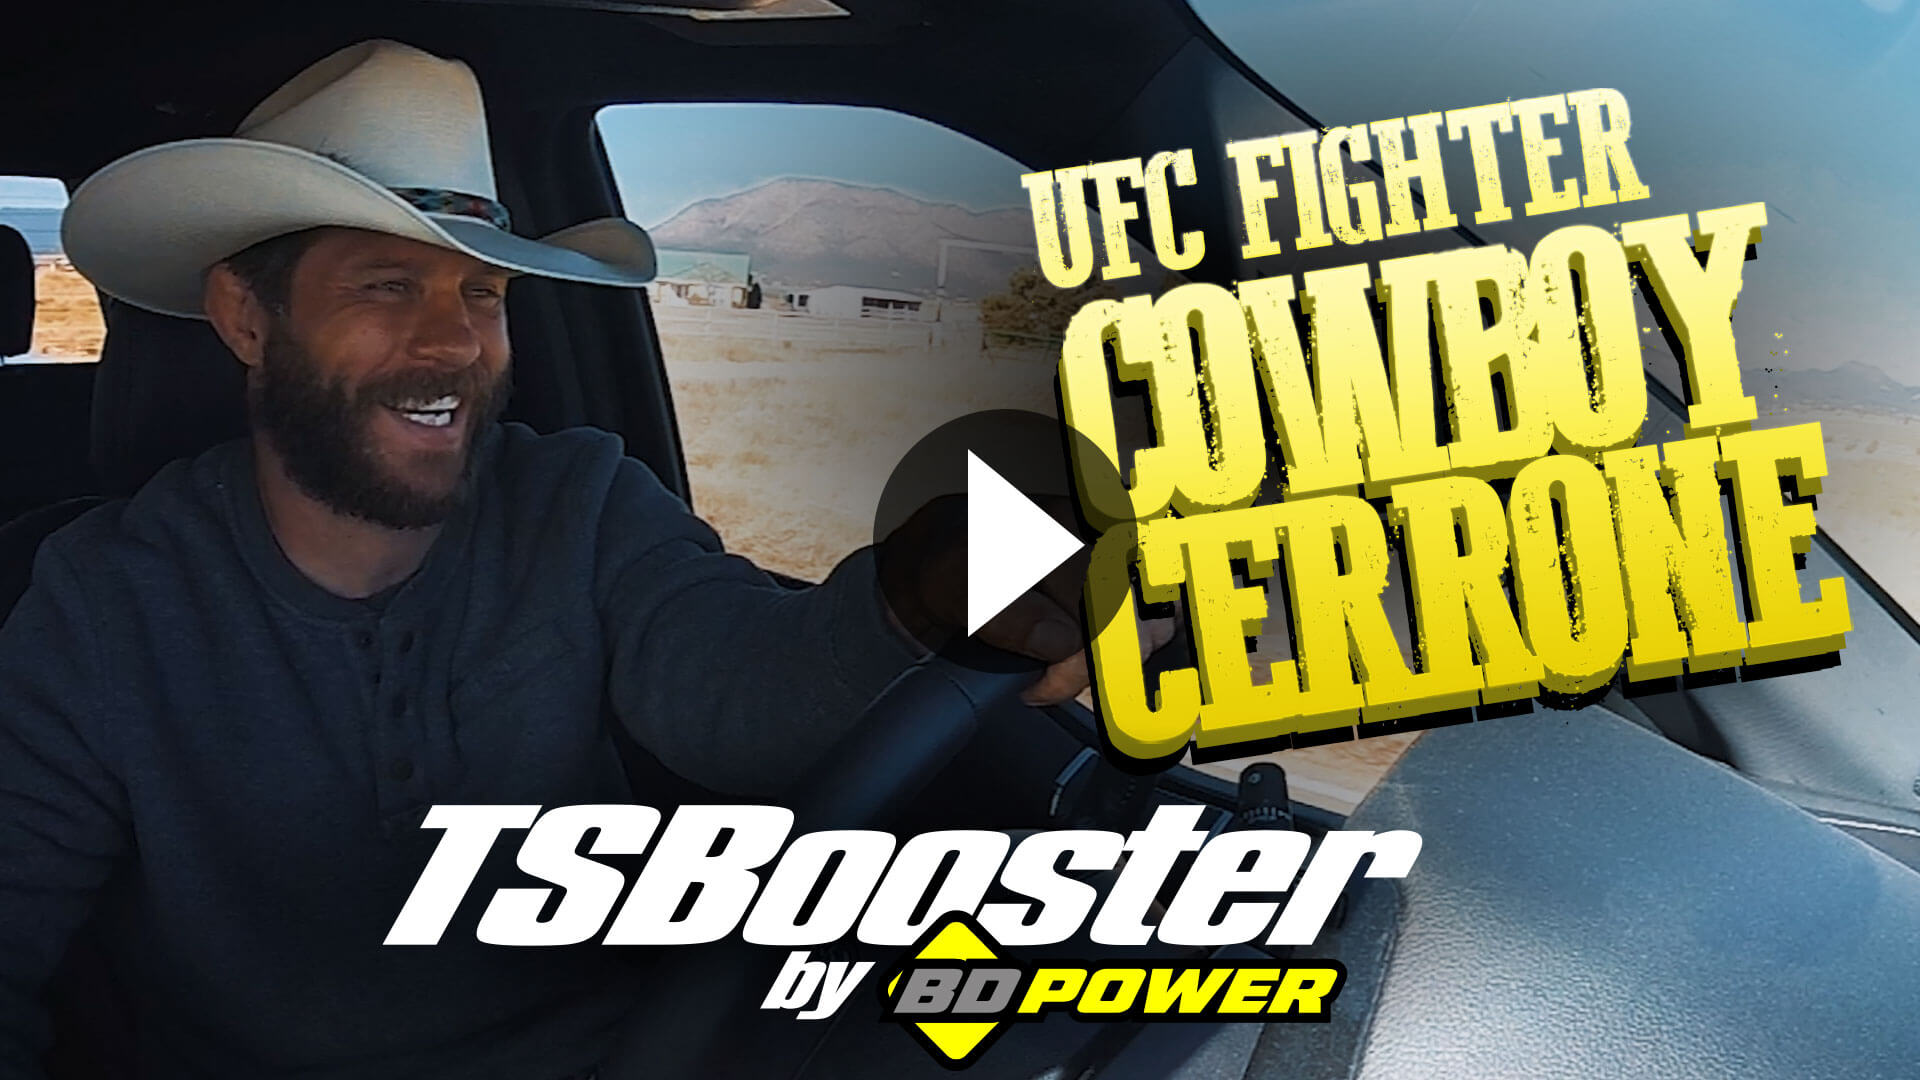 Cowboy Cerrone: Reaction time is everything